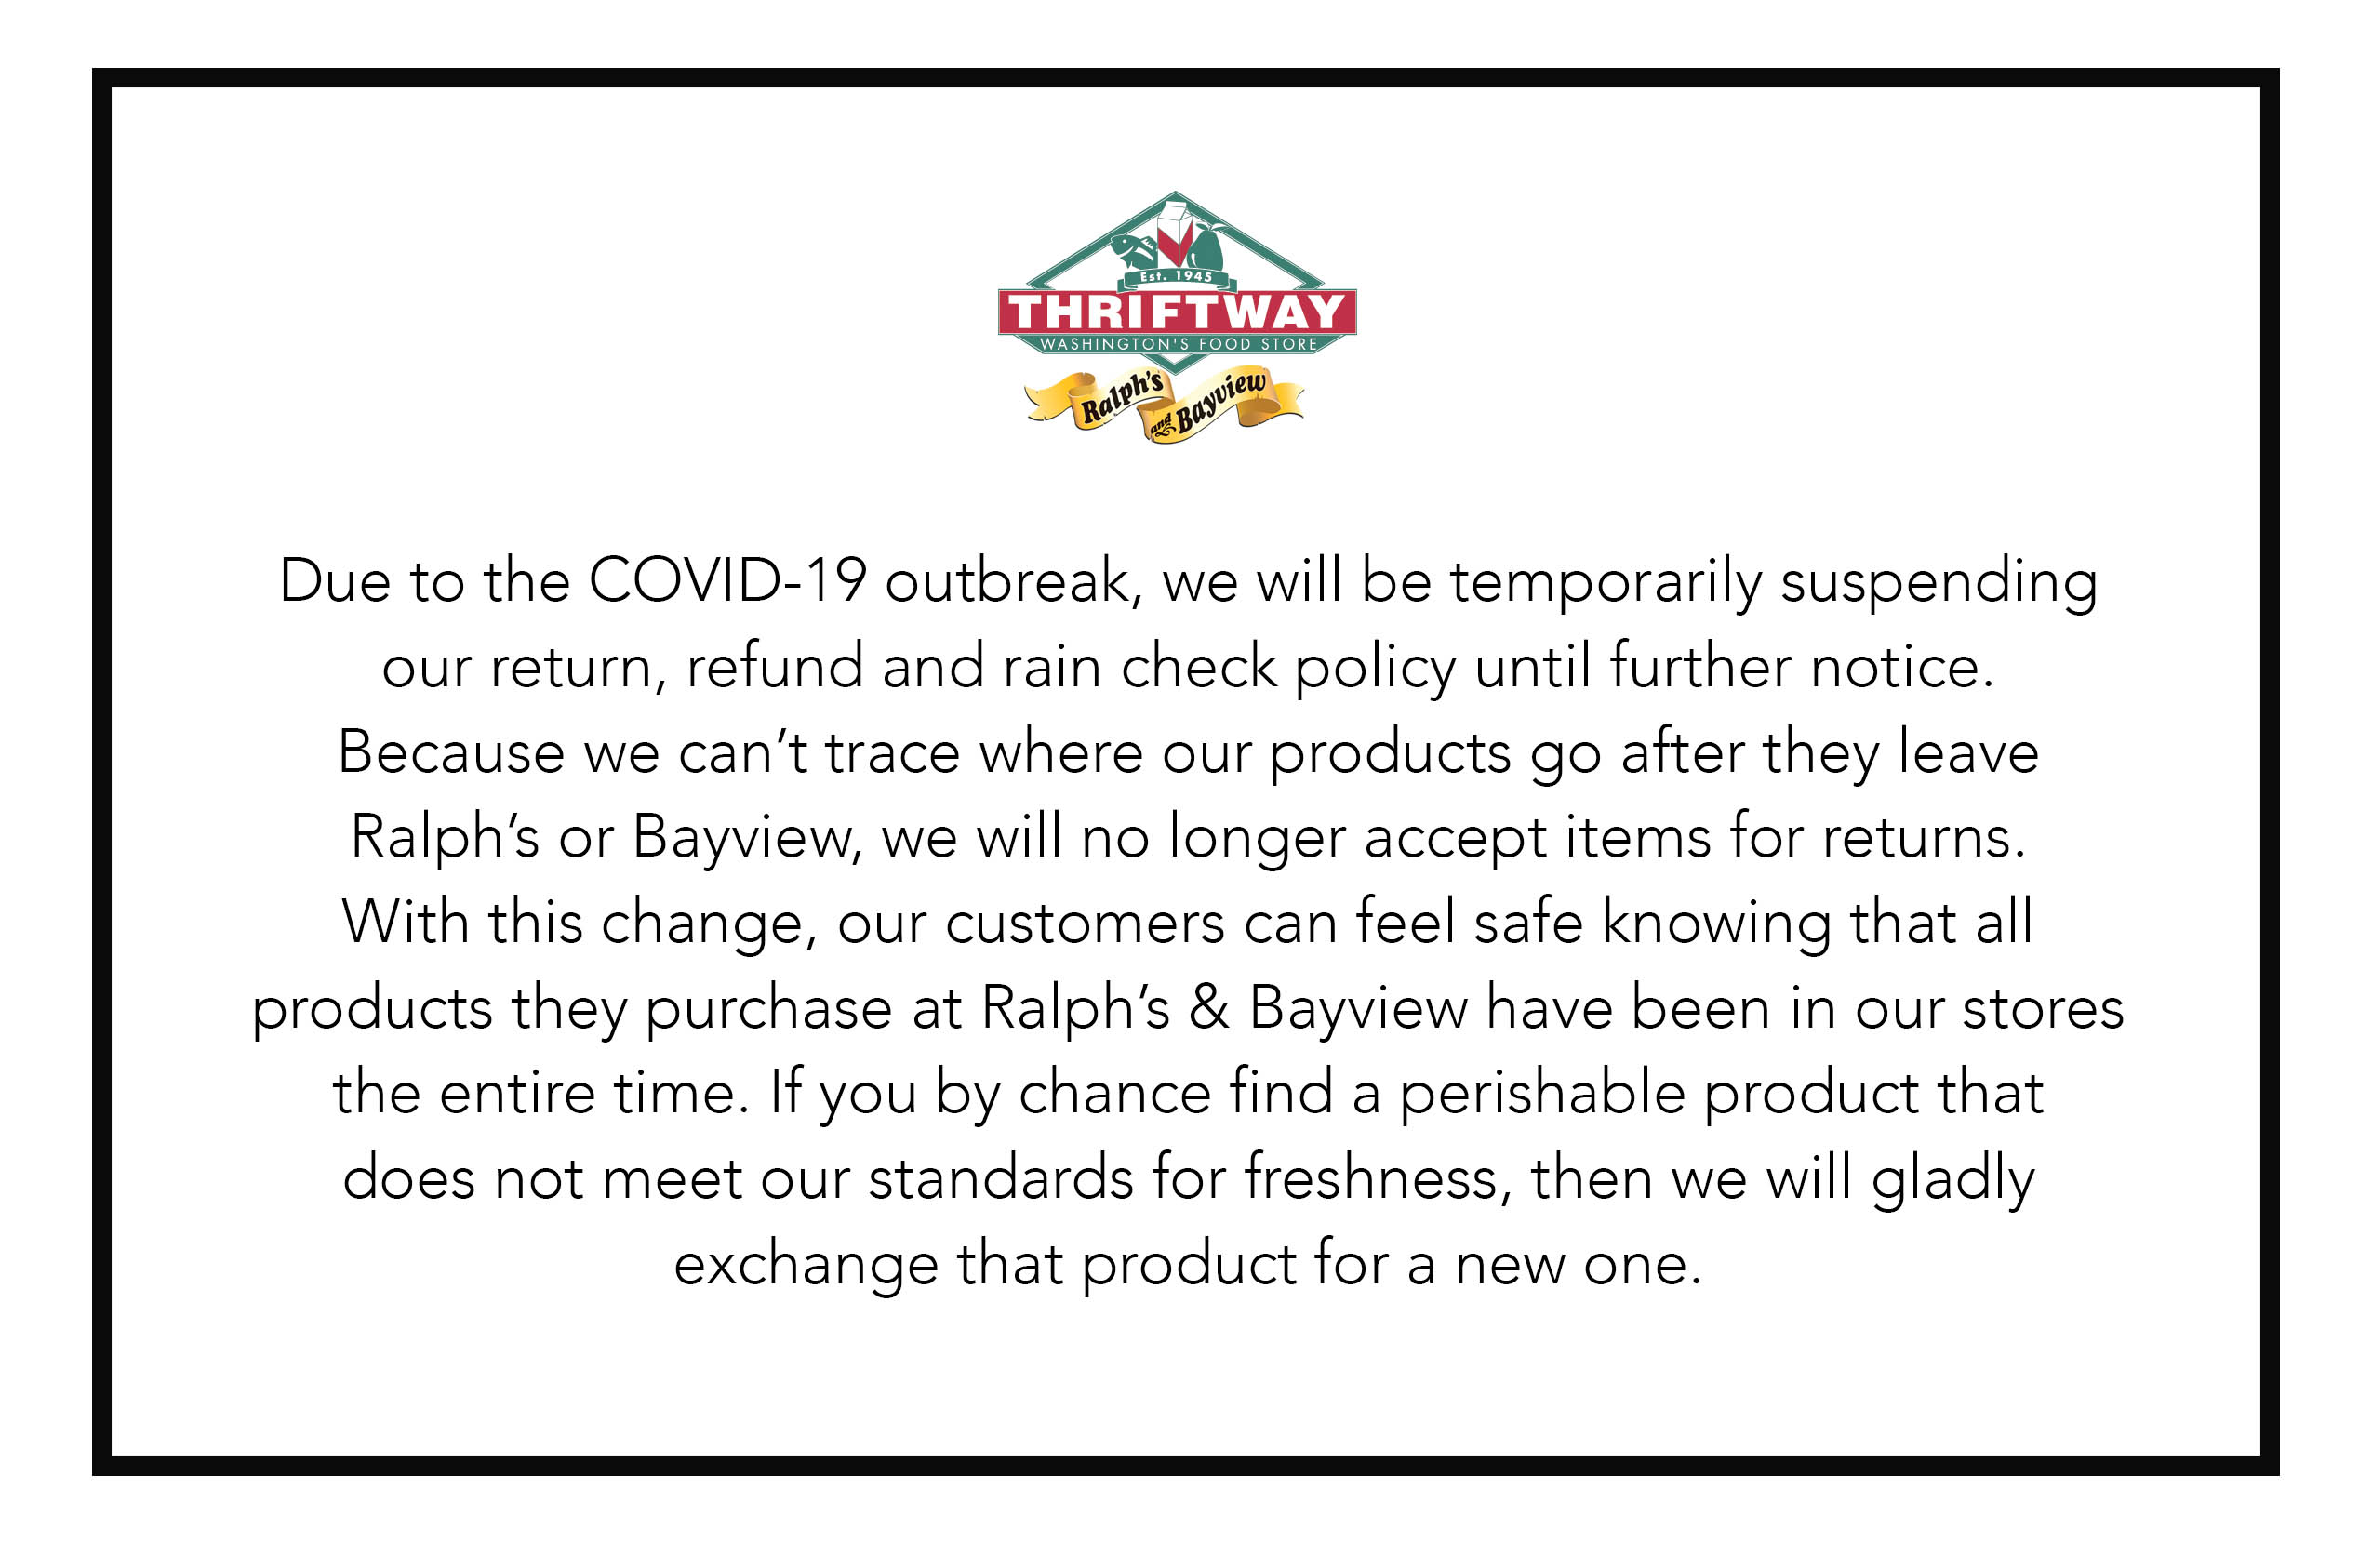 Due to the COVID-19 outbreak, we will be temporarily suspending out return, refund, and rain check policy until further notice. Because we can't trace where our products go after they leave Ralph's or Bayview, we will no longer accept items for returns. With this change, our customers can feel safe knowing that all products they purchase at Ralph's & Bayview have been in our stores the entire time. If you by chance find a perishable product that does not meet our standards for freshness, then we will gladly exchange that product for a new one.